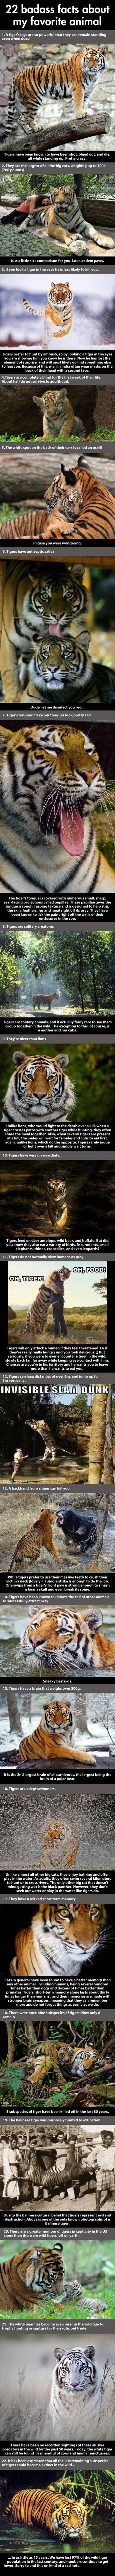 Tiger-Facts-donate-to-wildlife-conservation-to-save-these-precious-creatures-from-extinction-I-ju-wallpaper-wp38011177